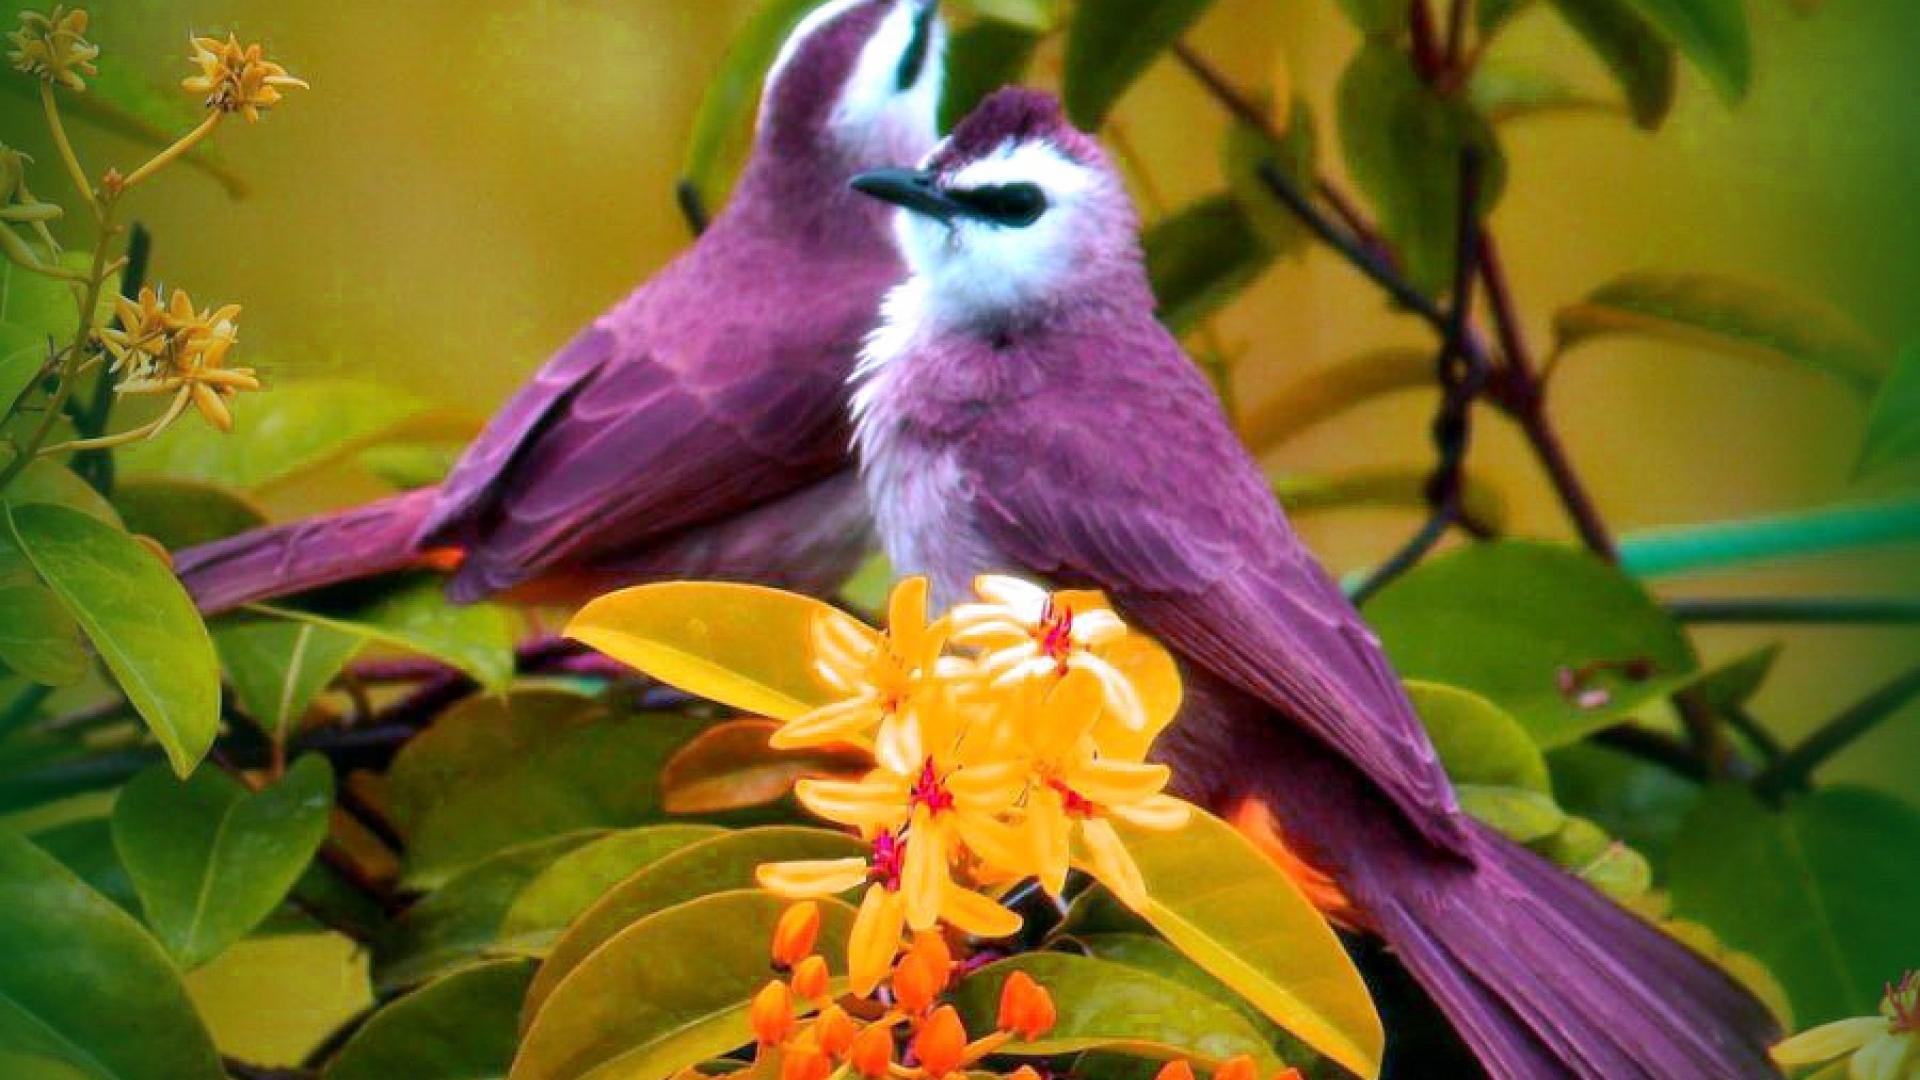 Yellow Bird on Purple Flower Wallpaper